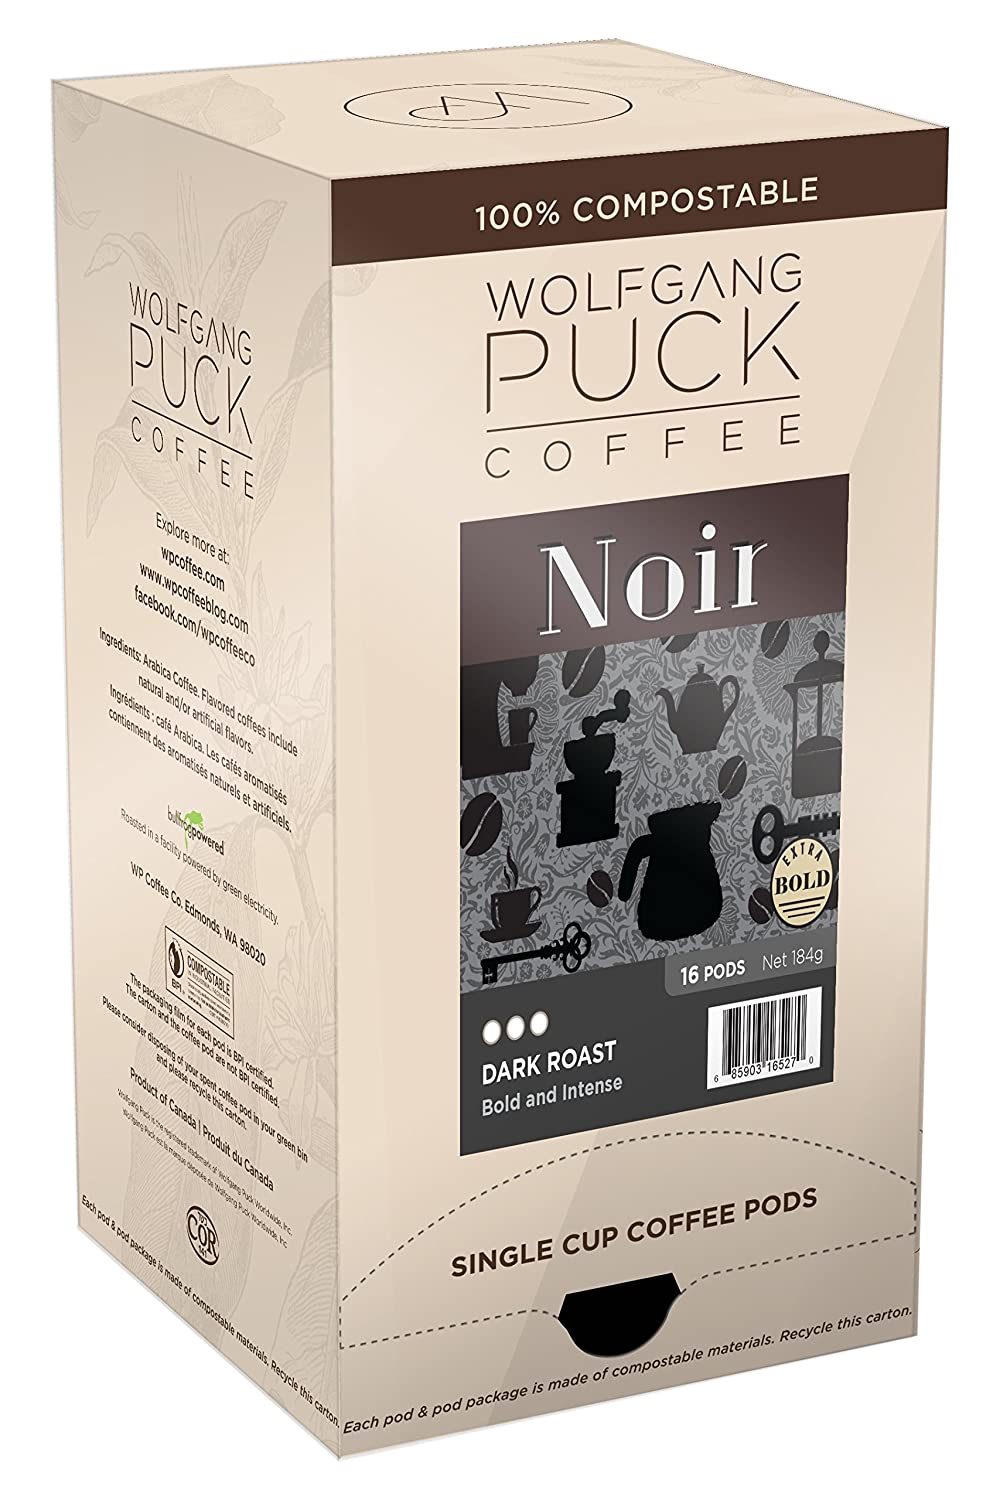 Wolfgang Puck Soft Coffee Pods Black, 96 Count